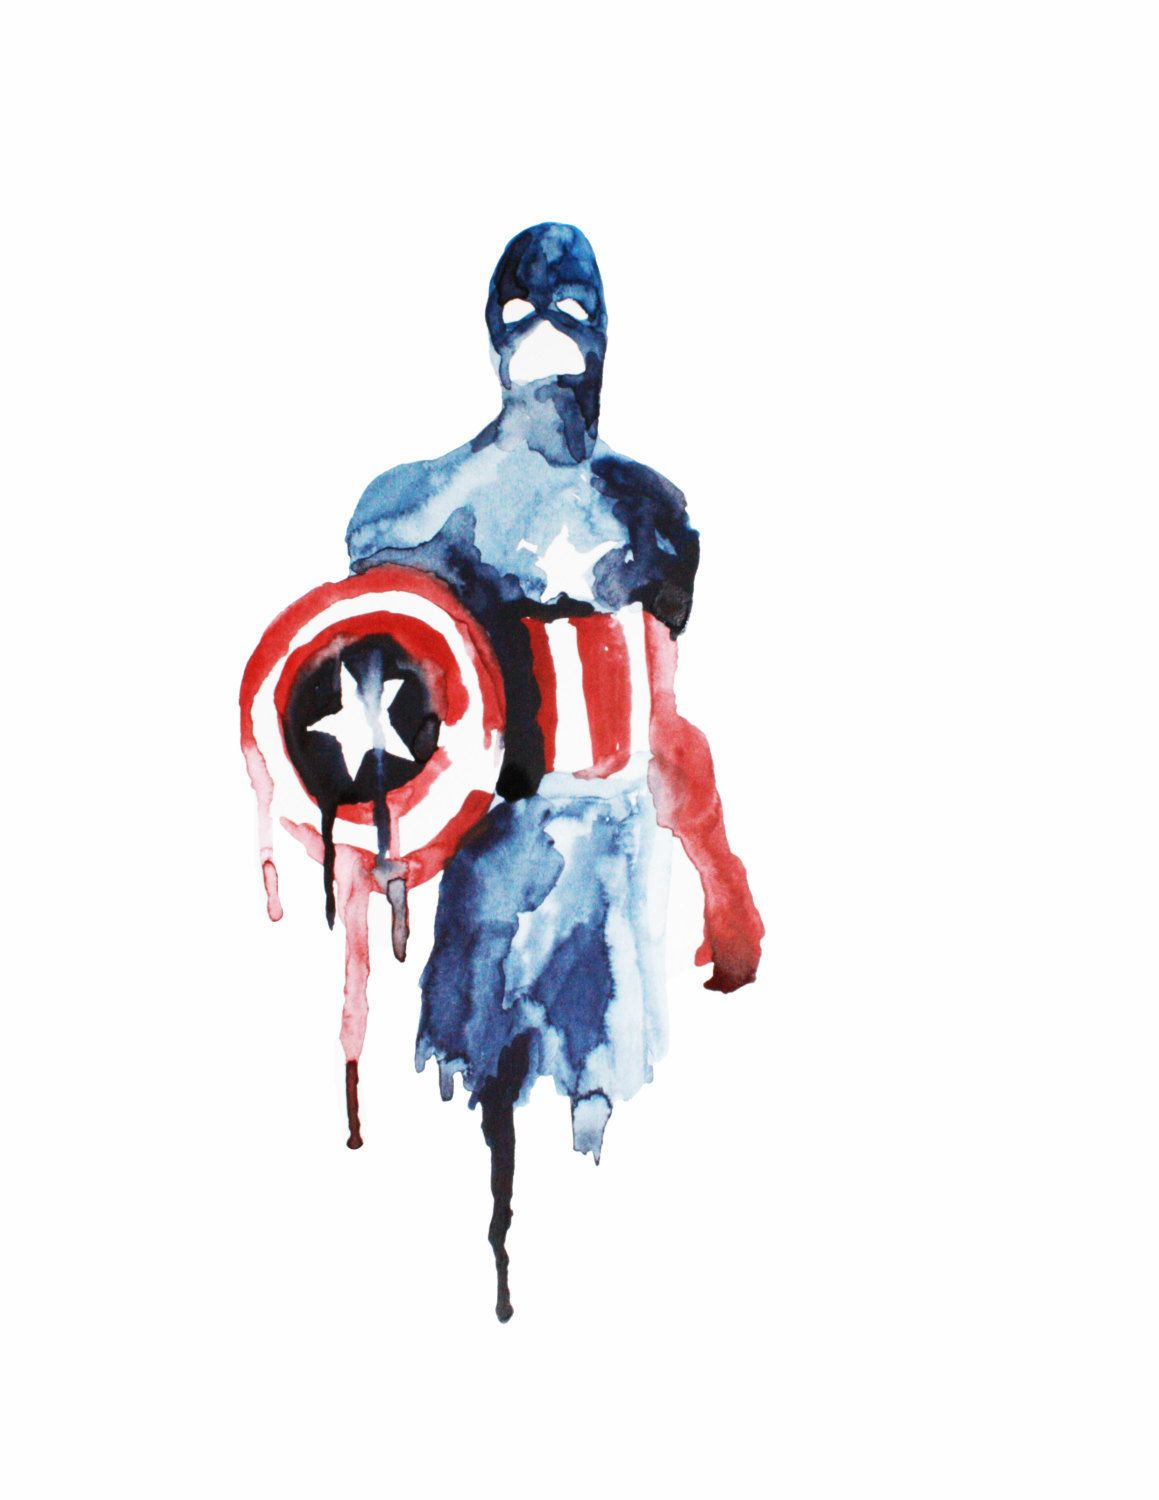 1159x1500 captain america, captain america painting, avengers painting